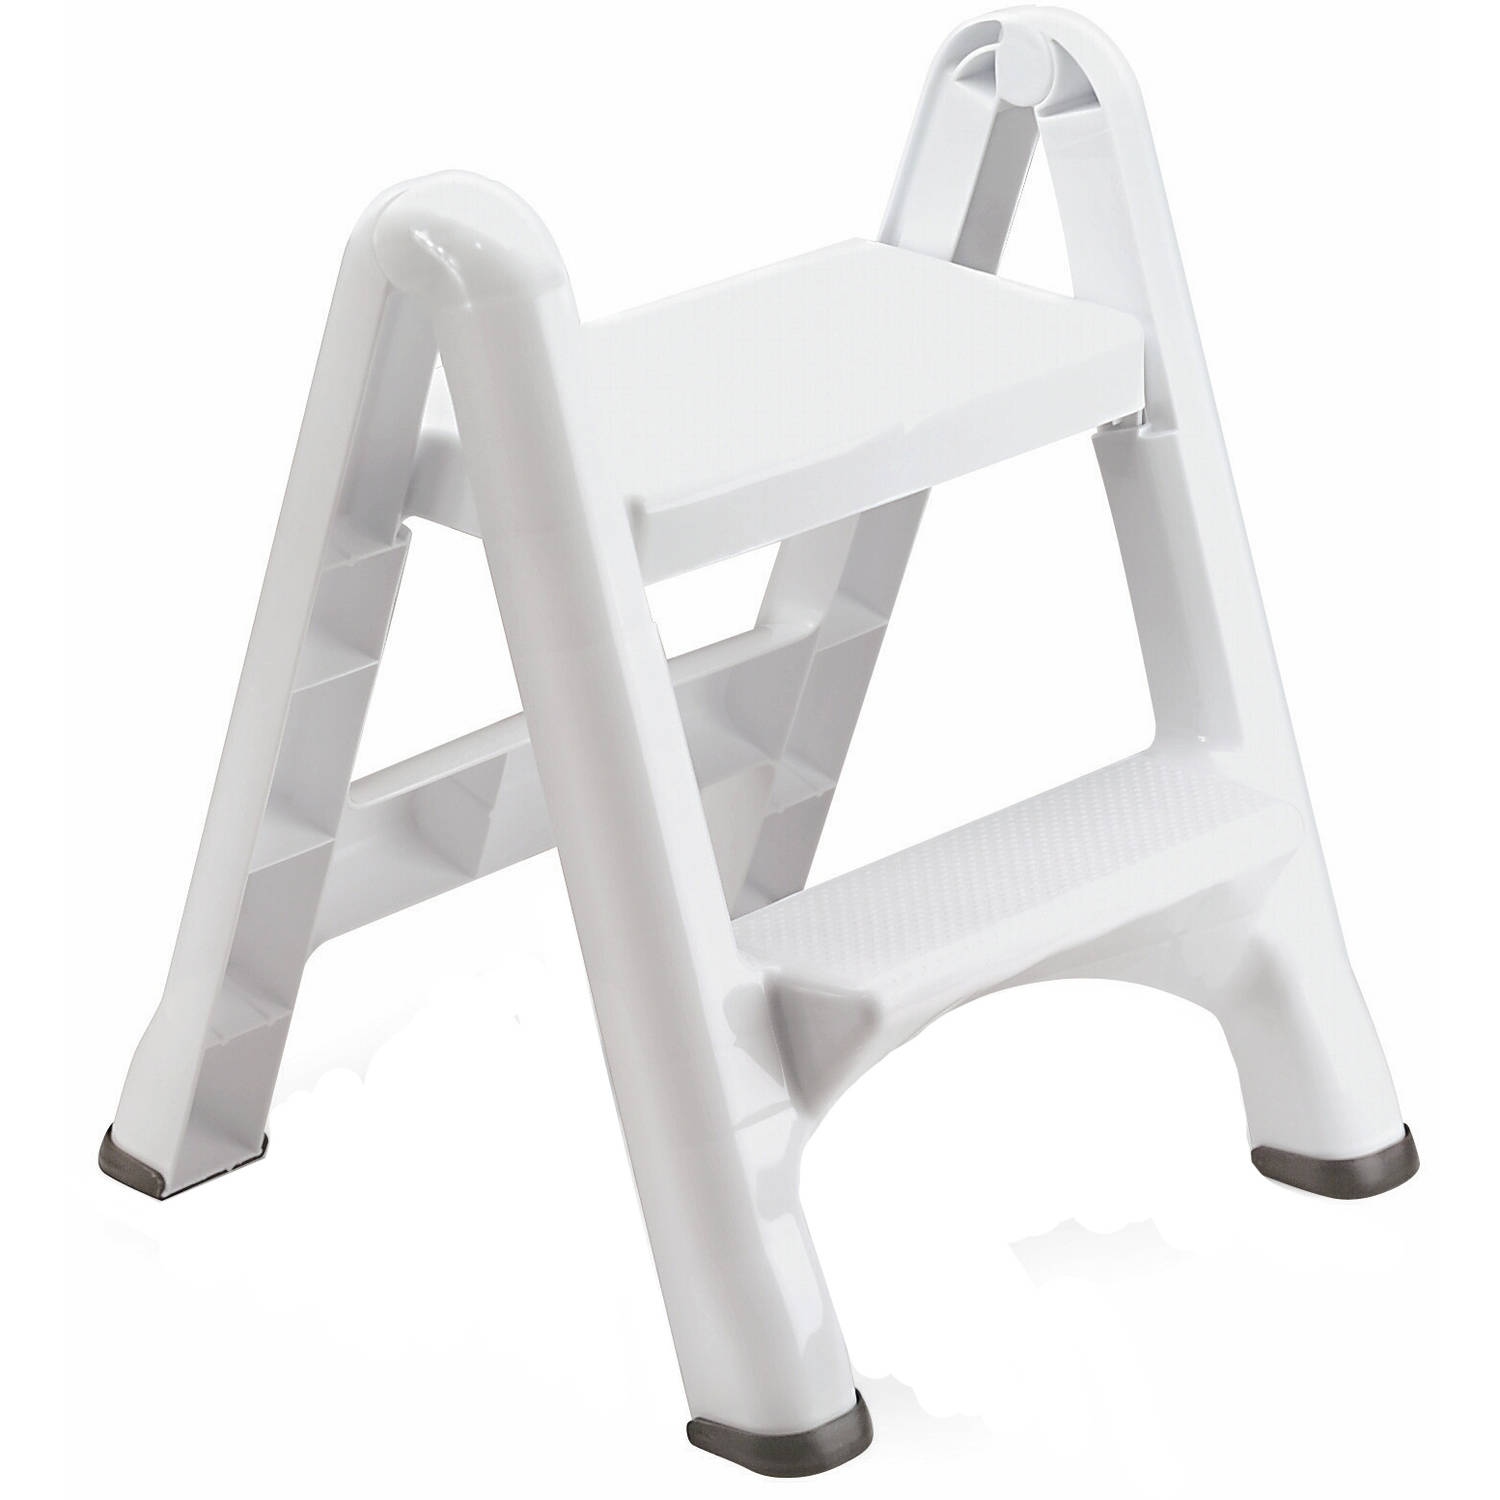 Rubbermaid Folding 2-Tier Step Stool  sc 1 st  Walmart : rubbermaid stepping stool - islam-shia.org